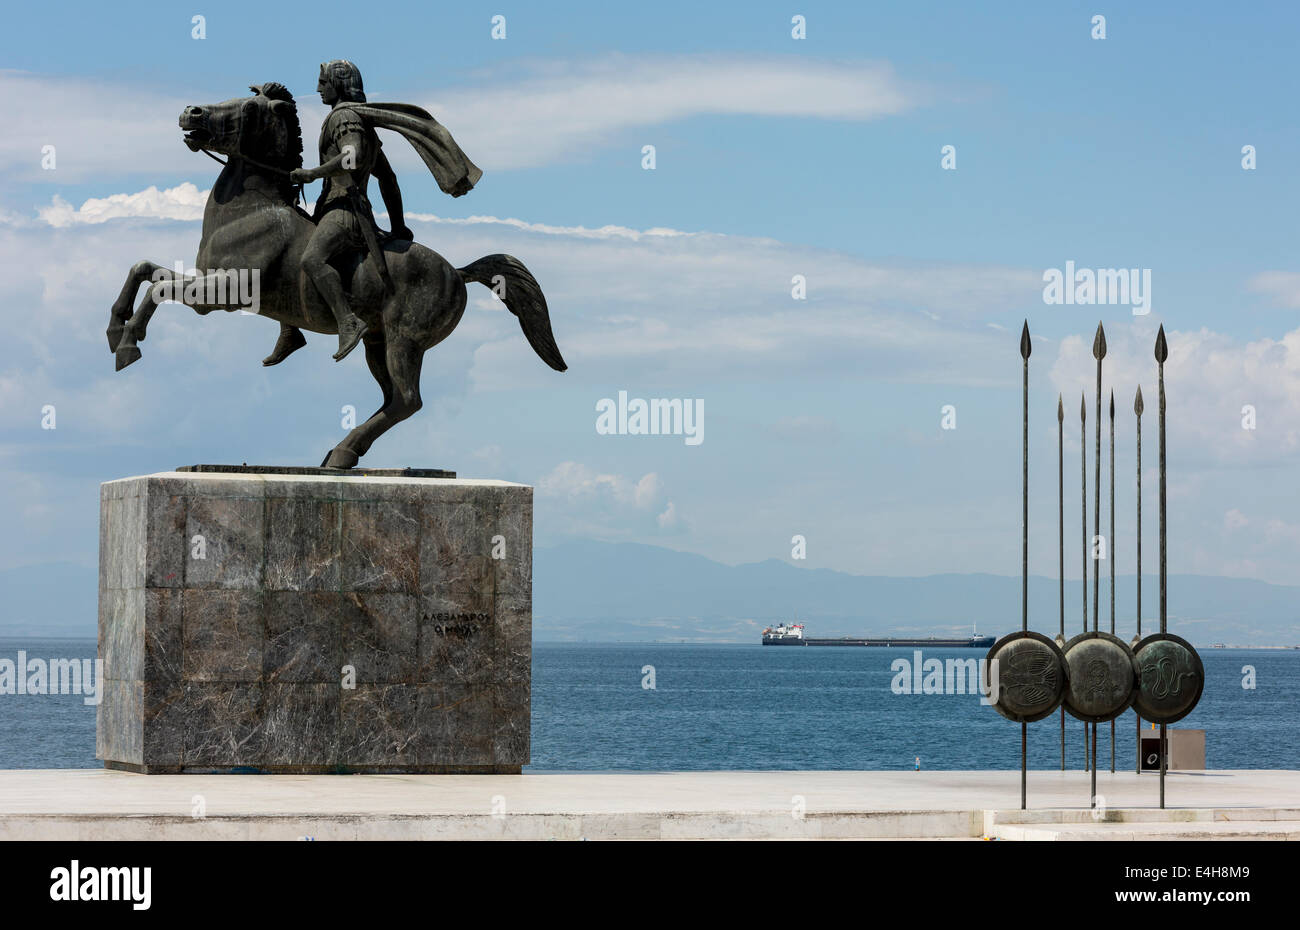 Statue of Alexander the Great and his horse Bucephalus, during a sunny morning, in the city of Thessaloniki, Greece. Stock Photo